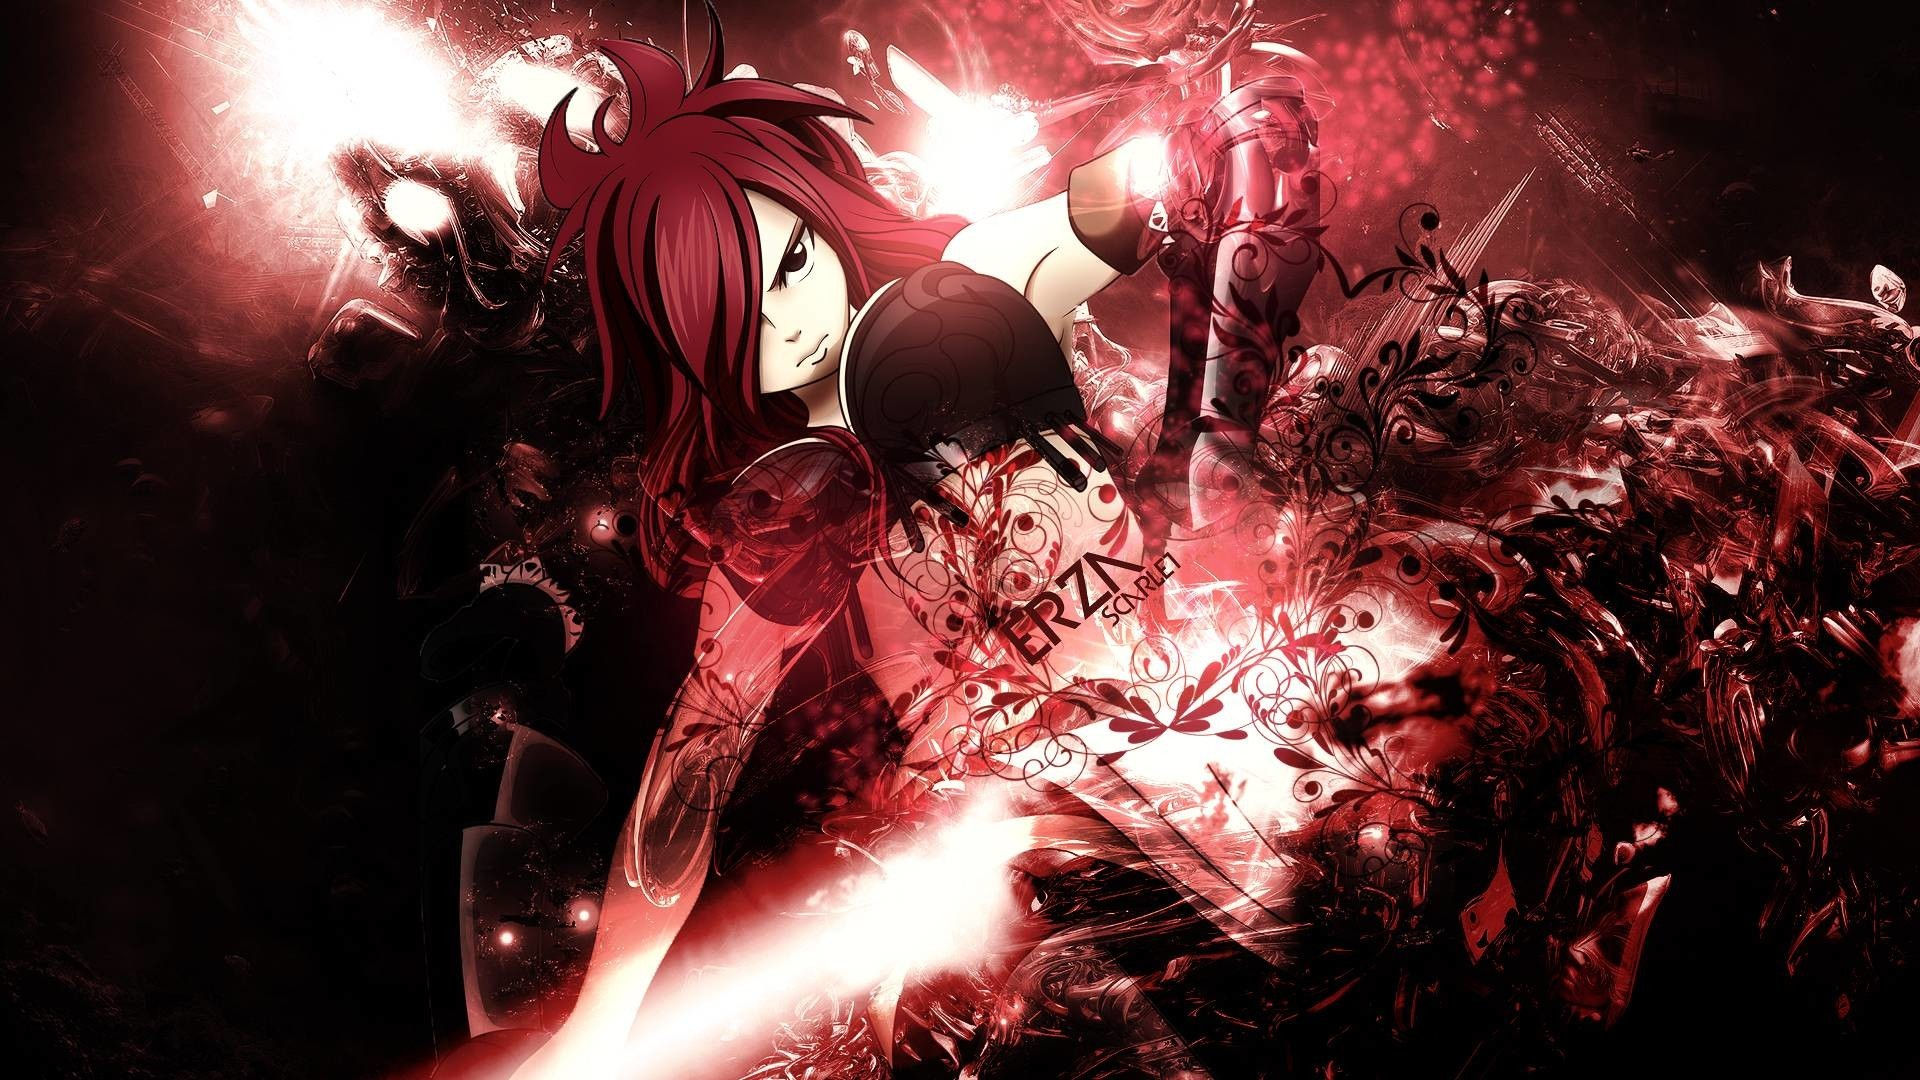 Res: 1920x1080,  Fairy Tail Wallpaper Hd Erza Images & Pictures - Becuo